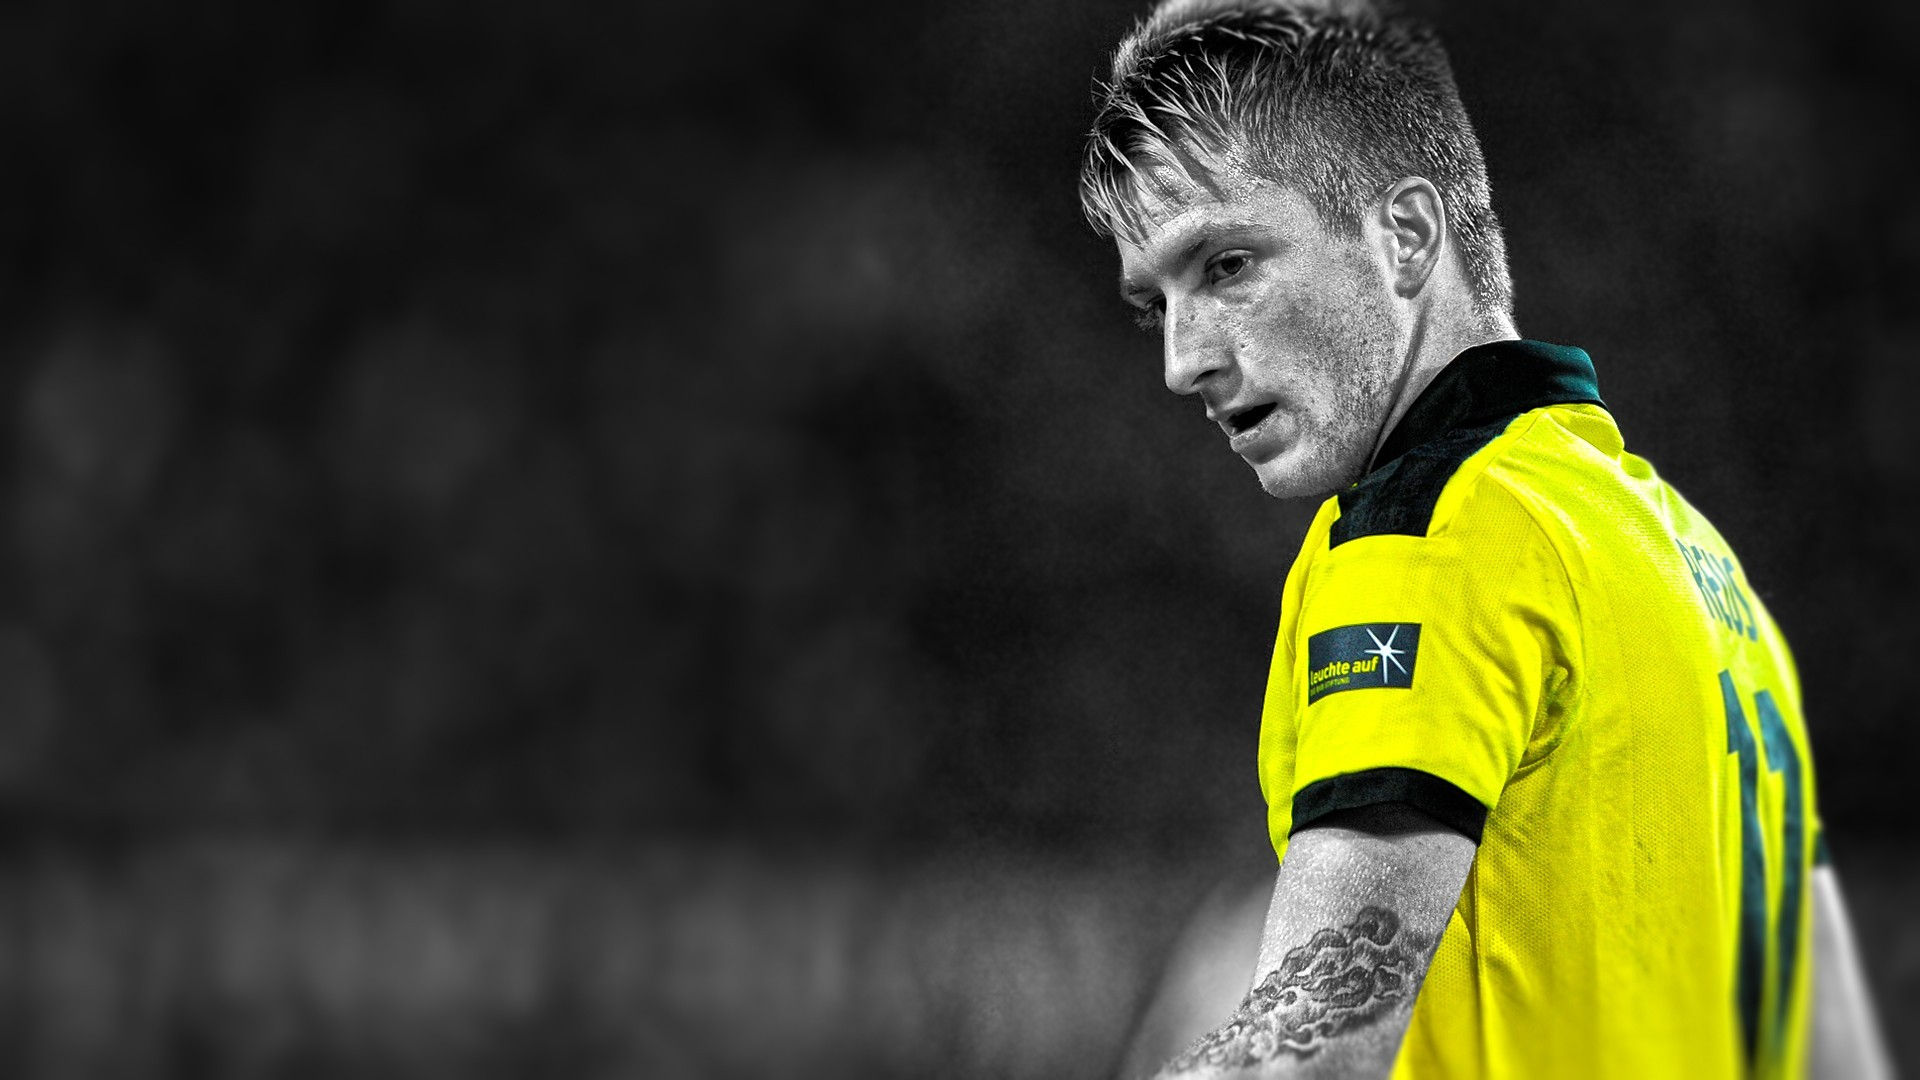 Marco Reus wallpaper